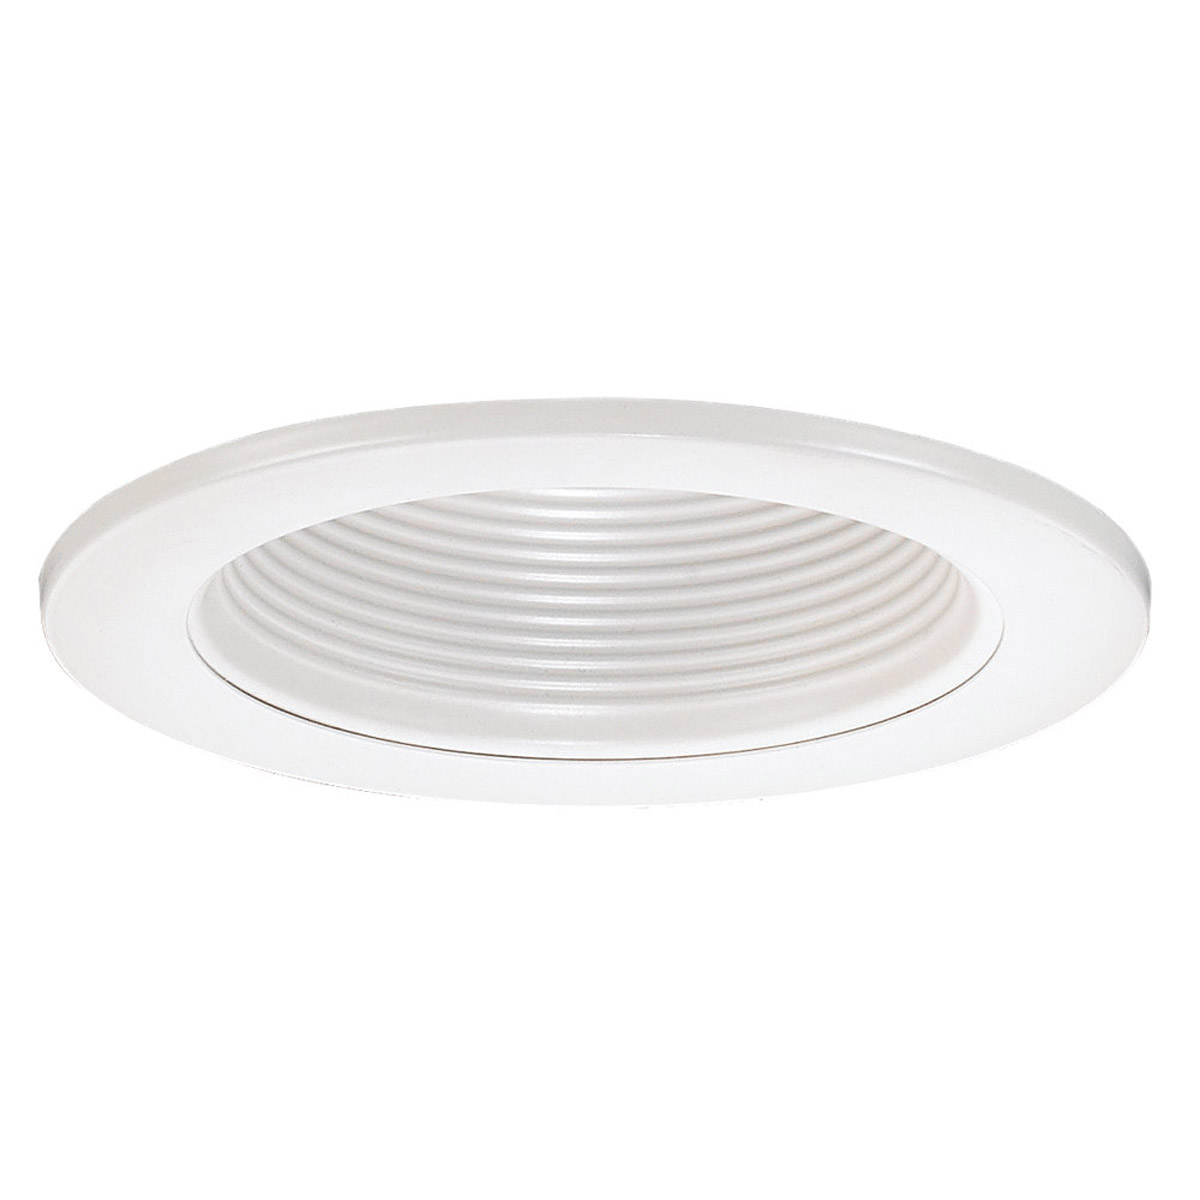 Sea Gull Lighting Signature Recessed Trim Only in White 1156AT-14